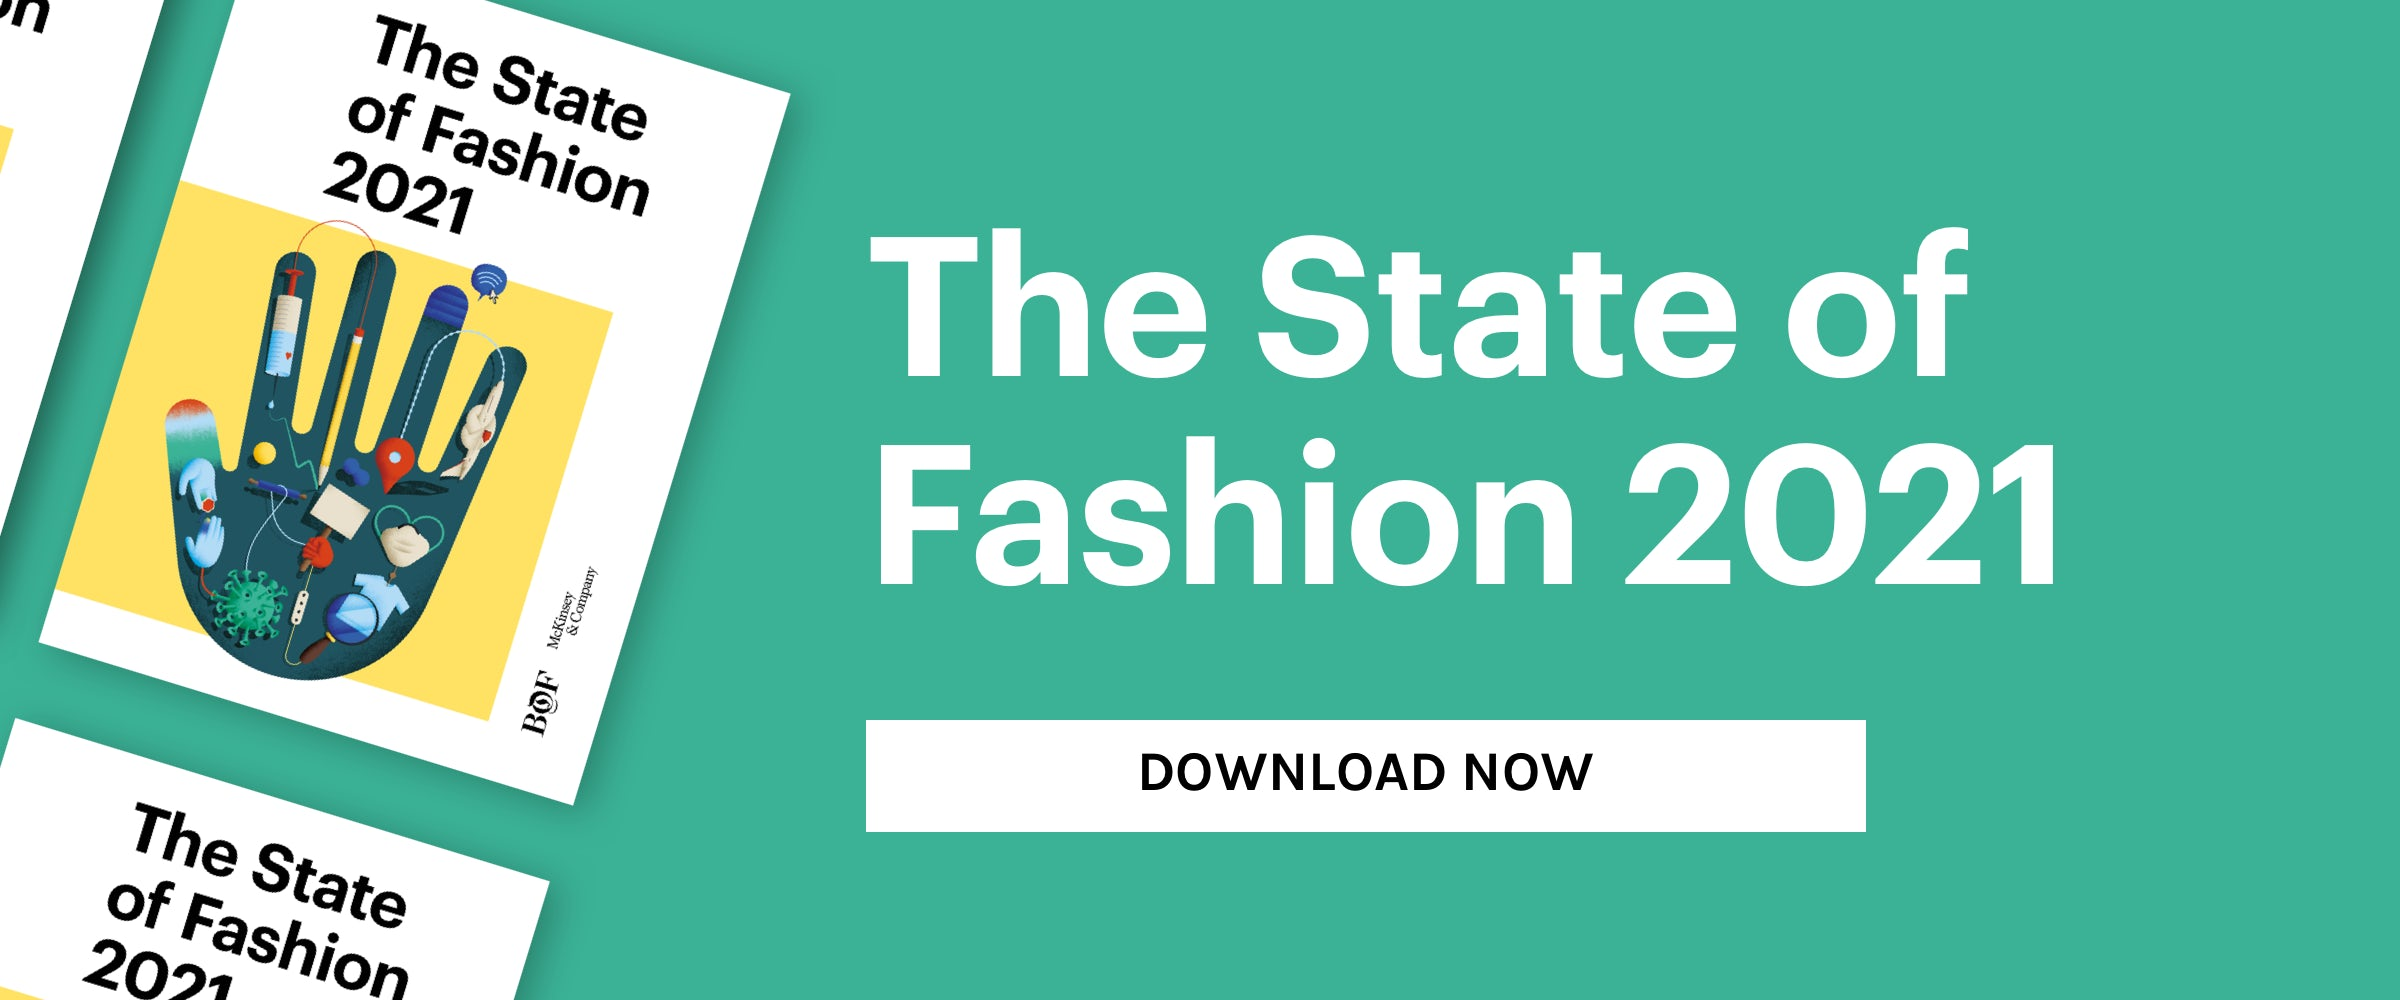 State of Fashion 2021 Download Banner